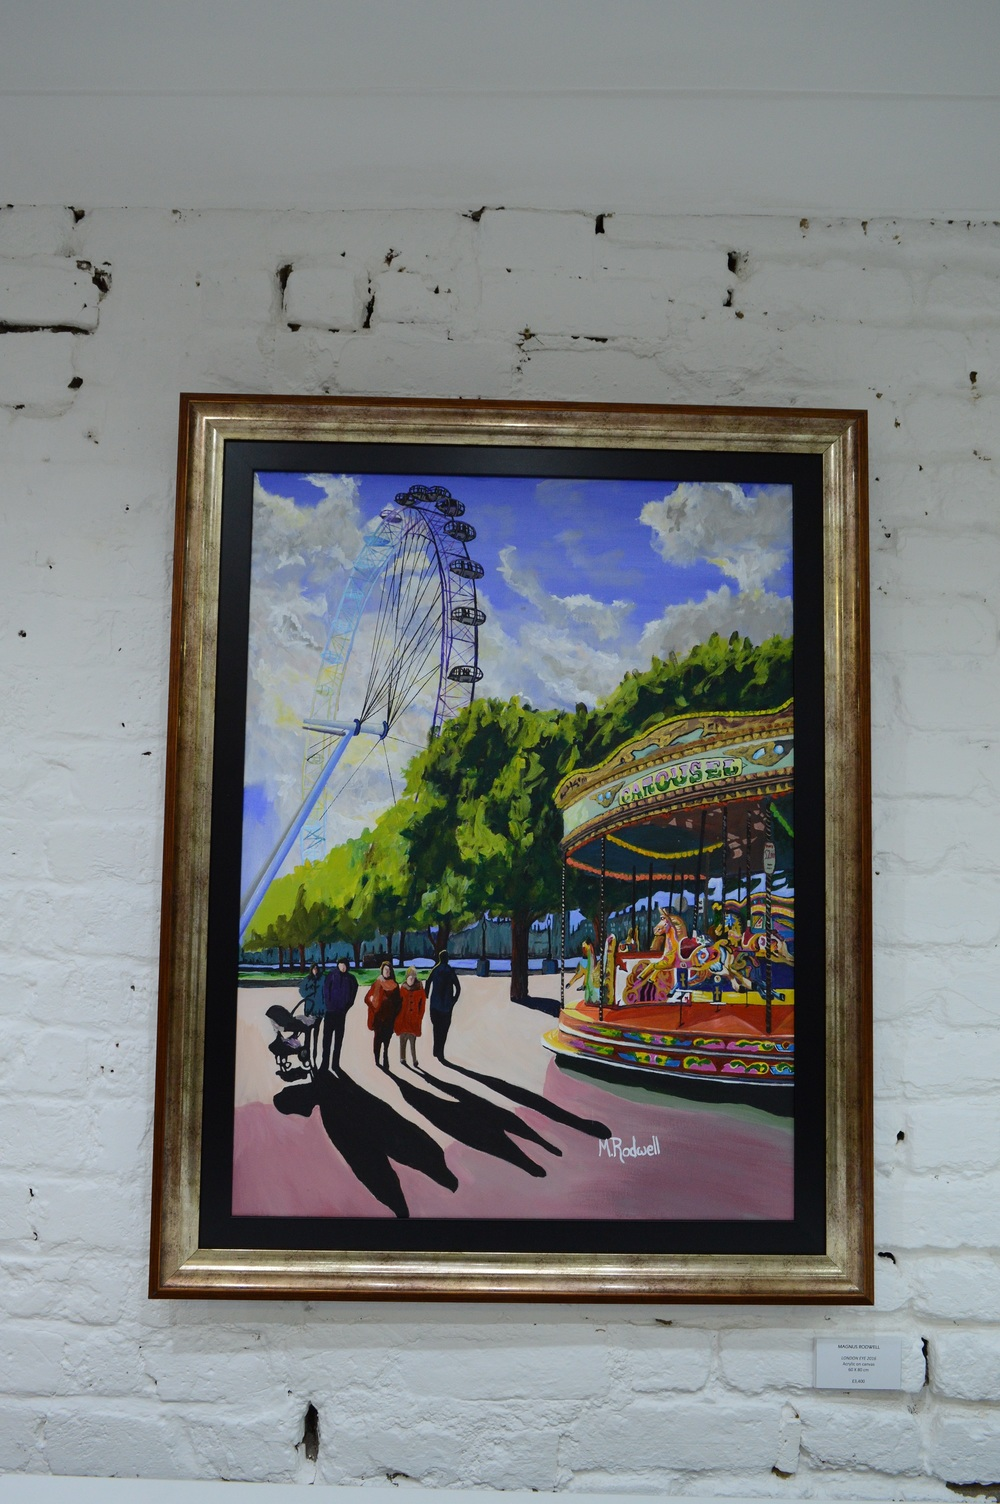 London Eye | 504 Gallery Event | Artist M.Rodwell